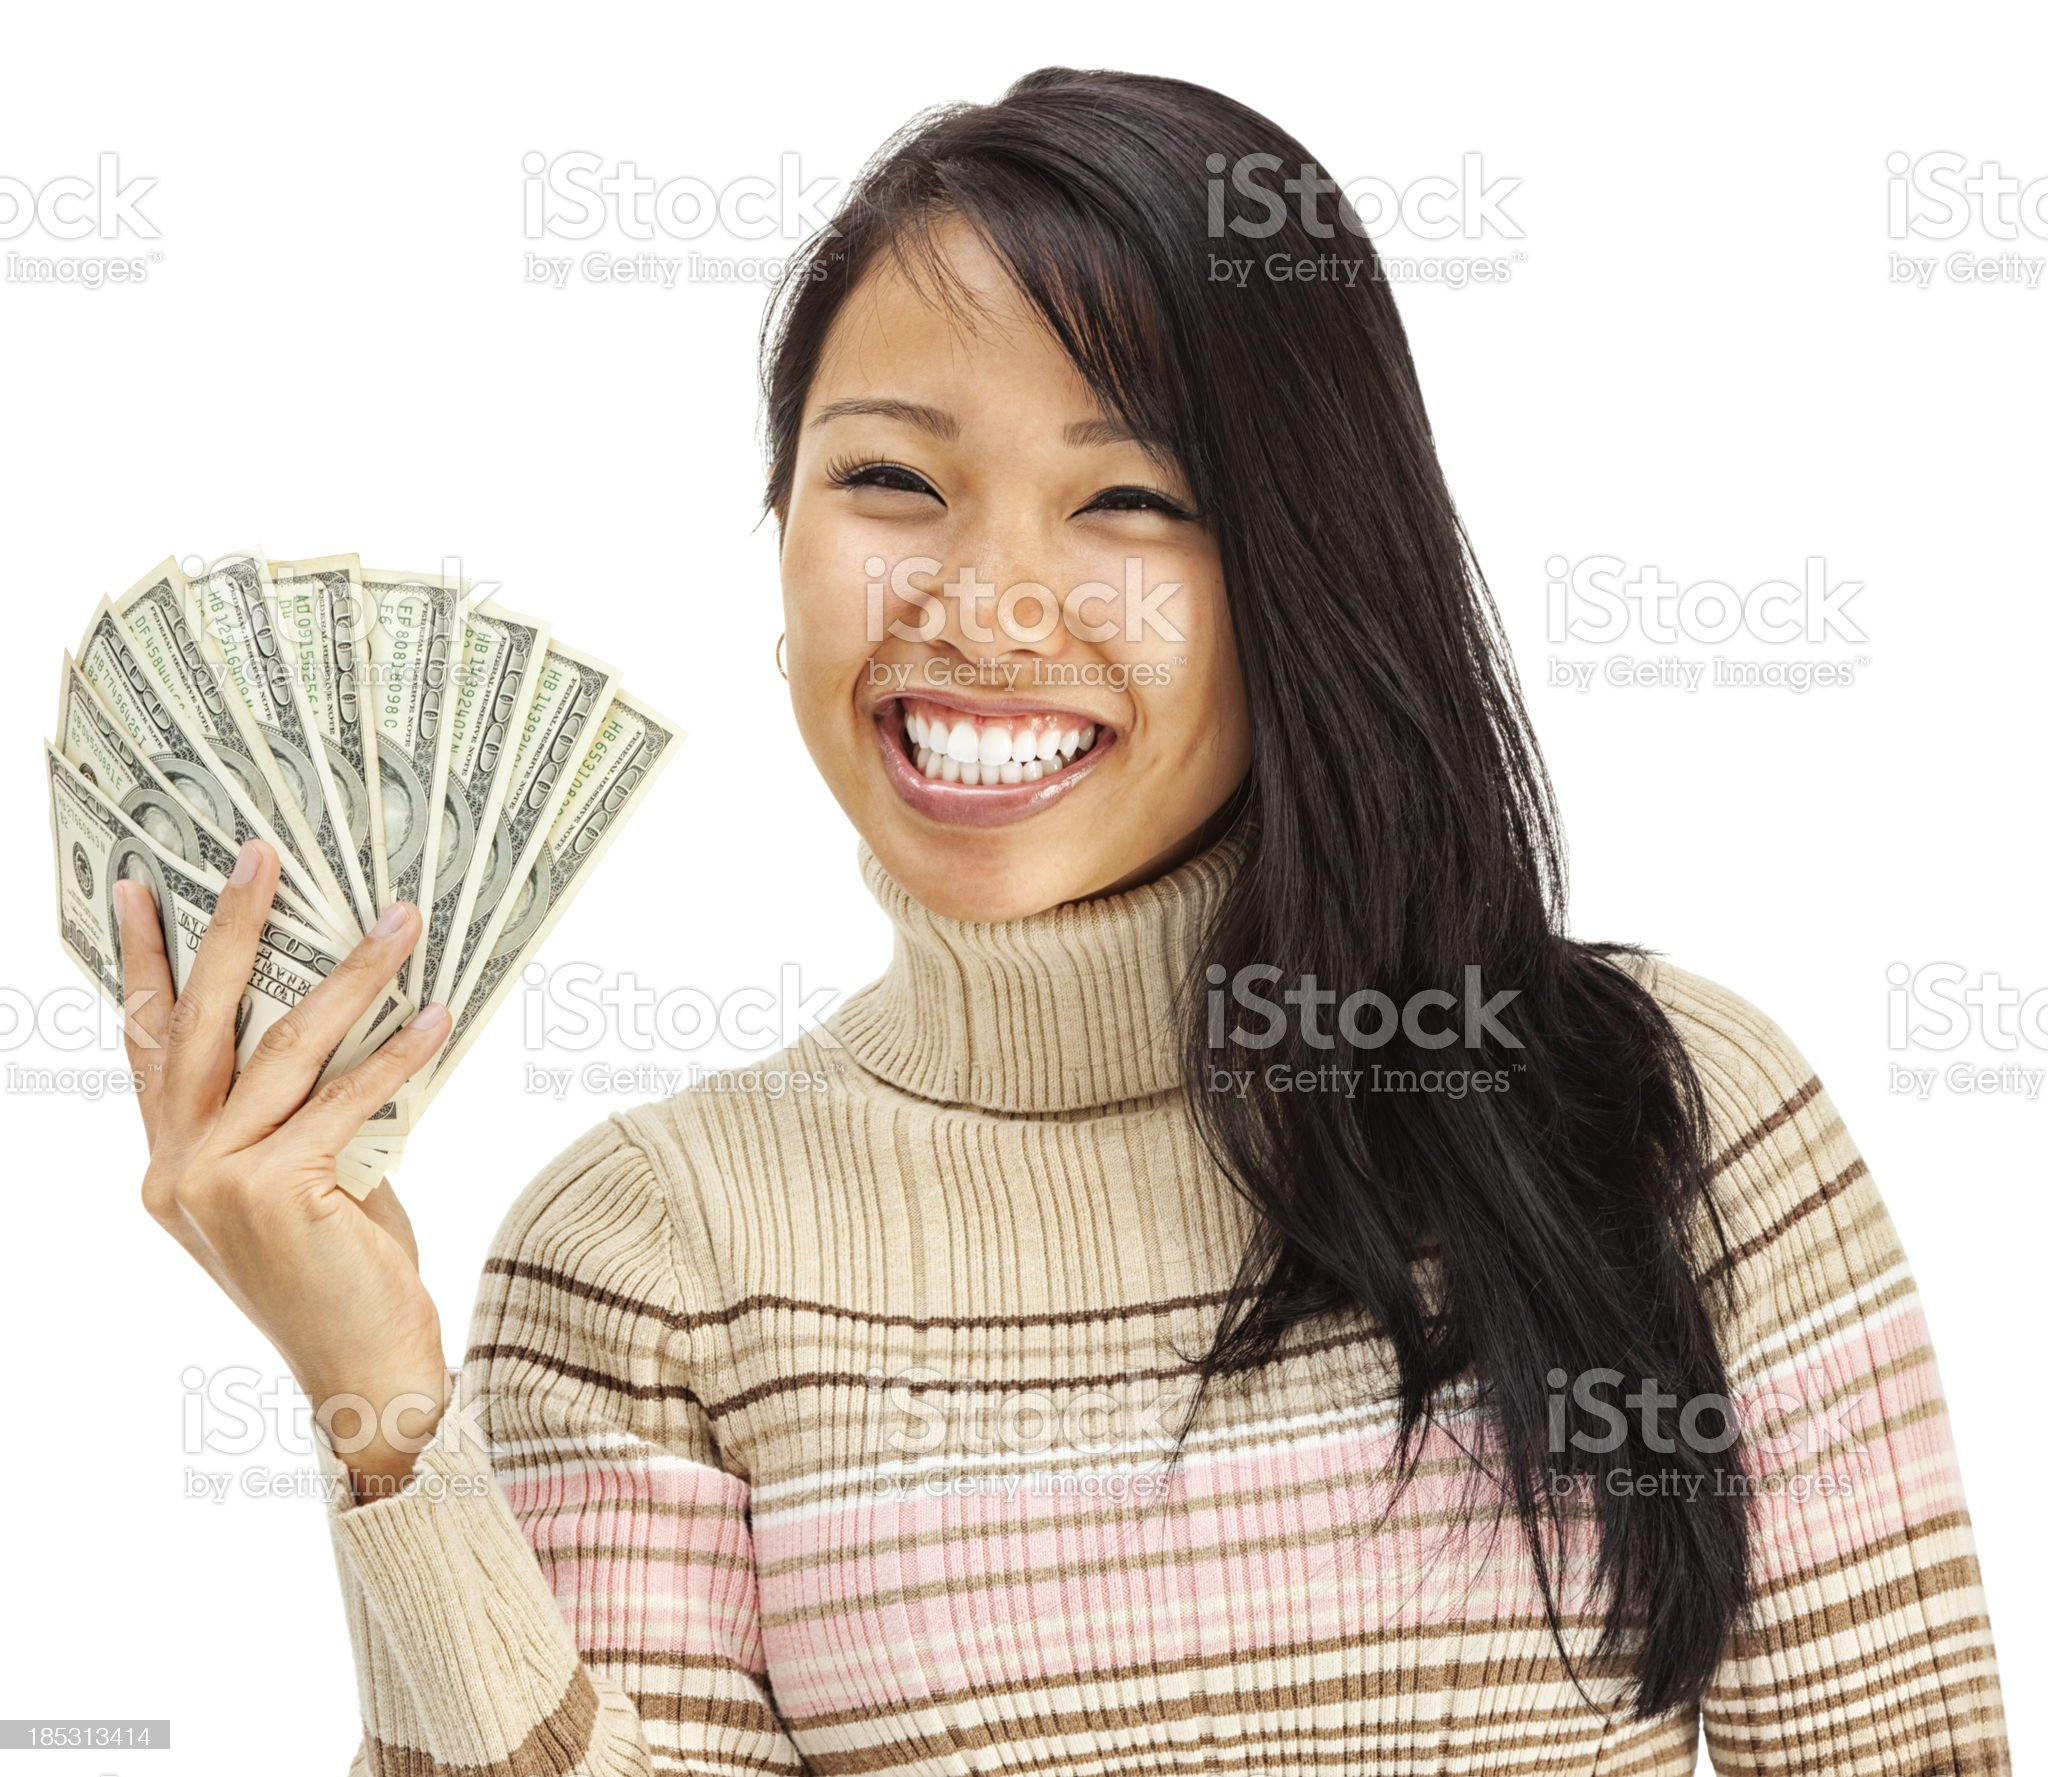 Excited Young Woman Asian Holding Cash Money royalty-free stock photo